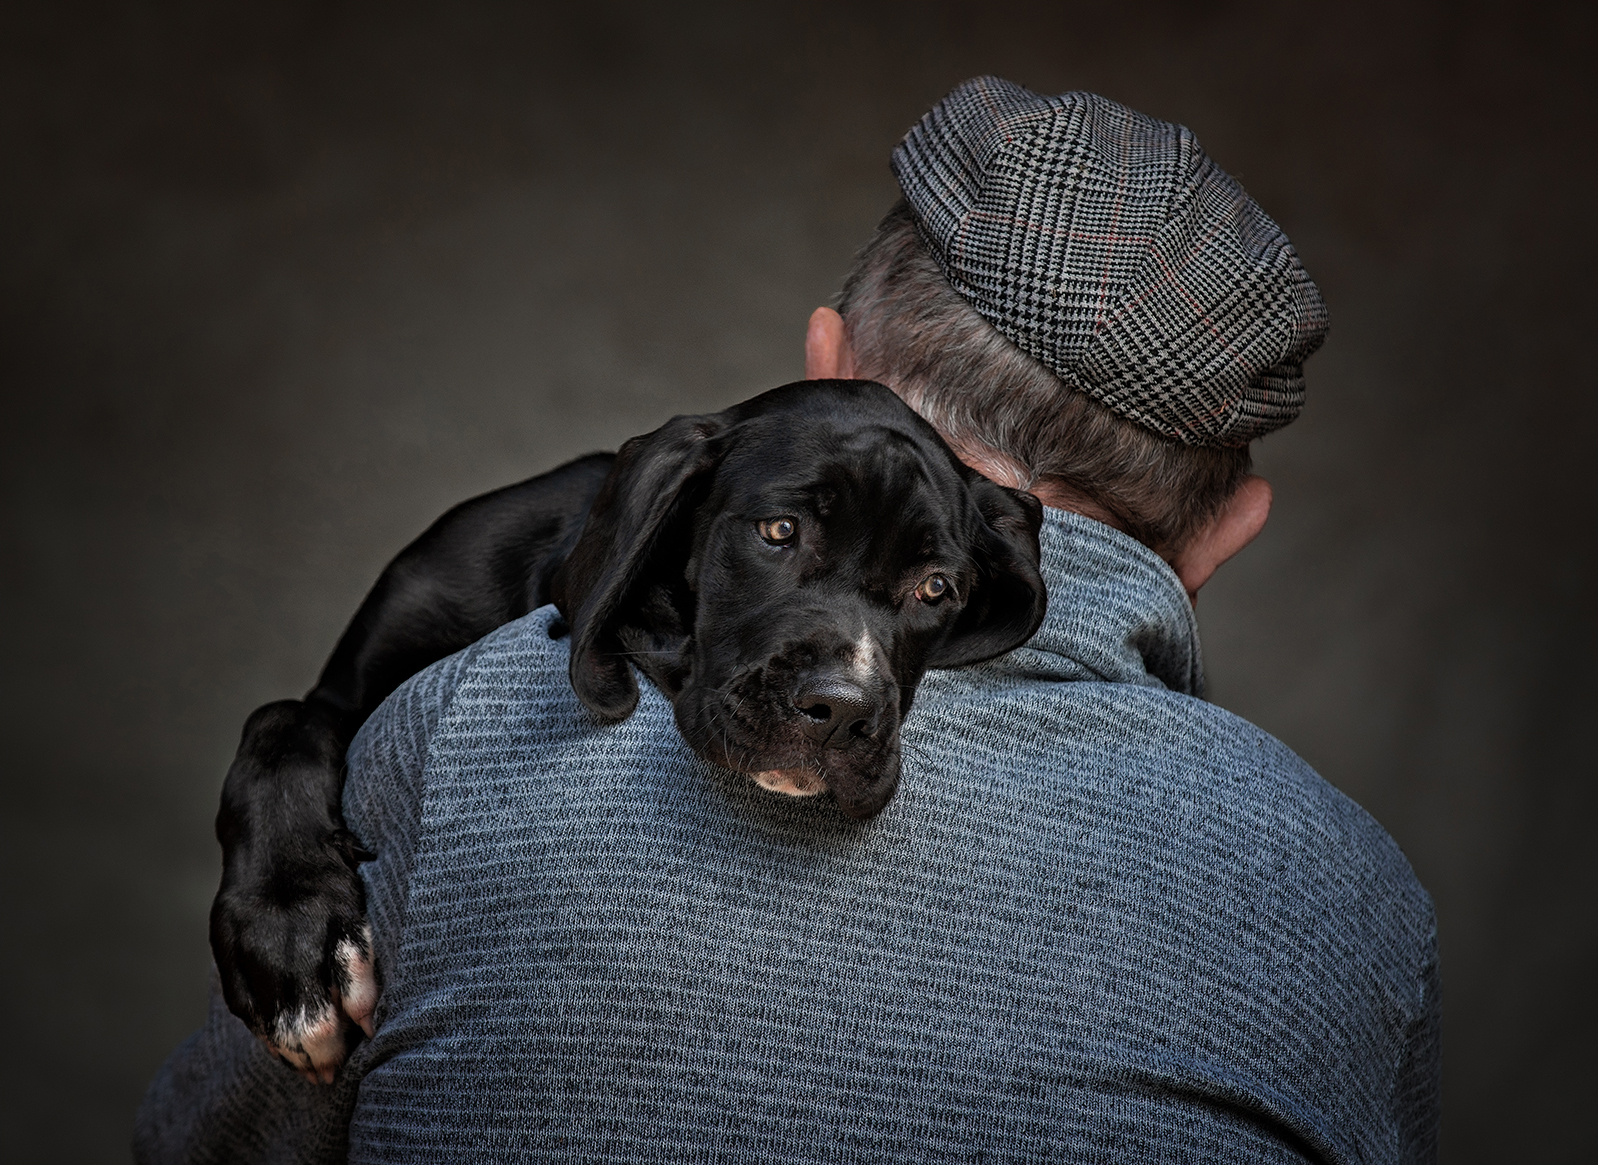 Mans Best Friend, by Angela Carr